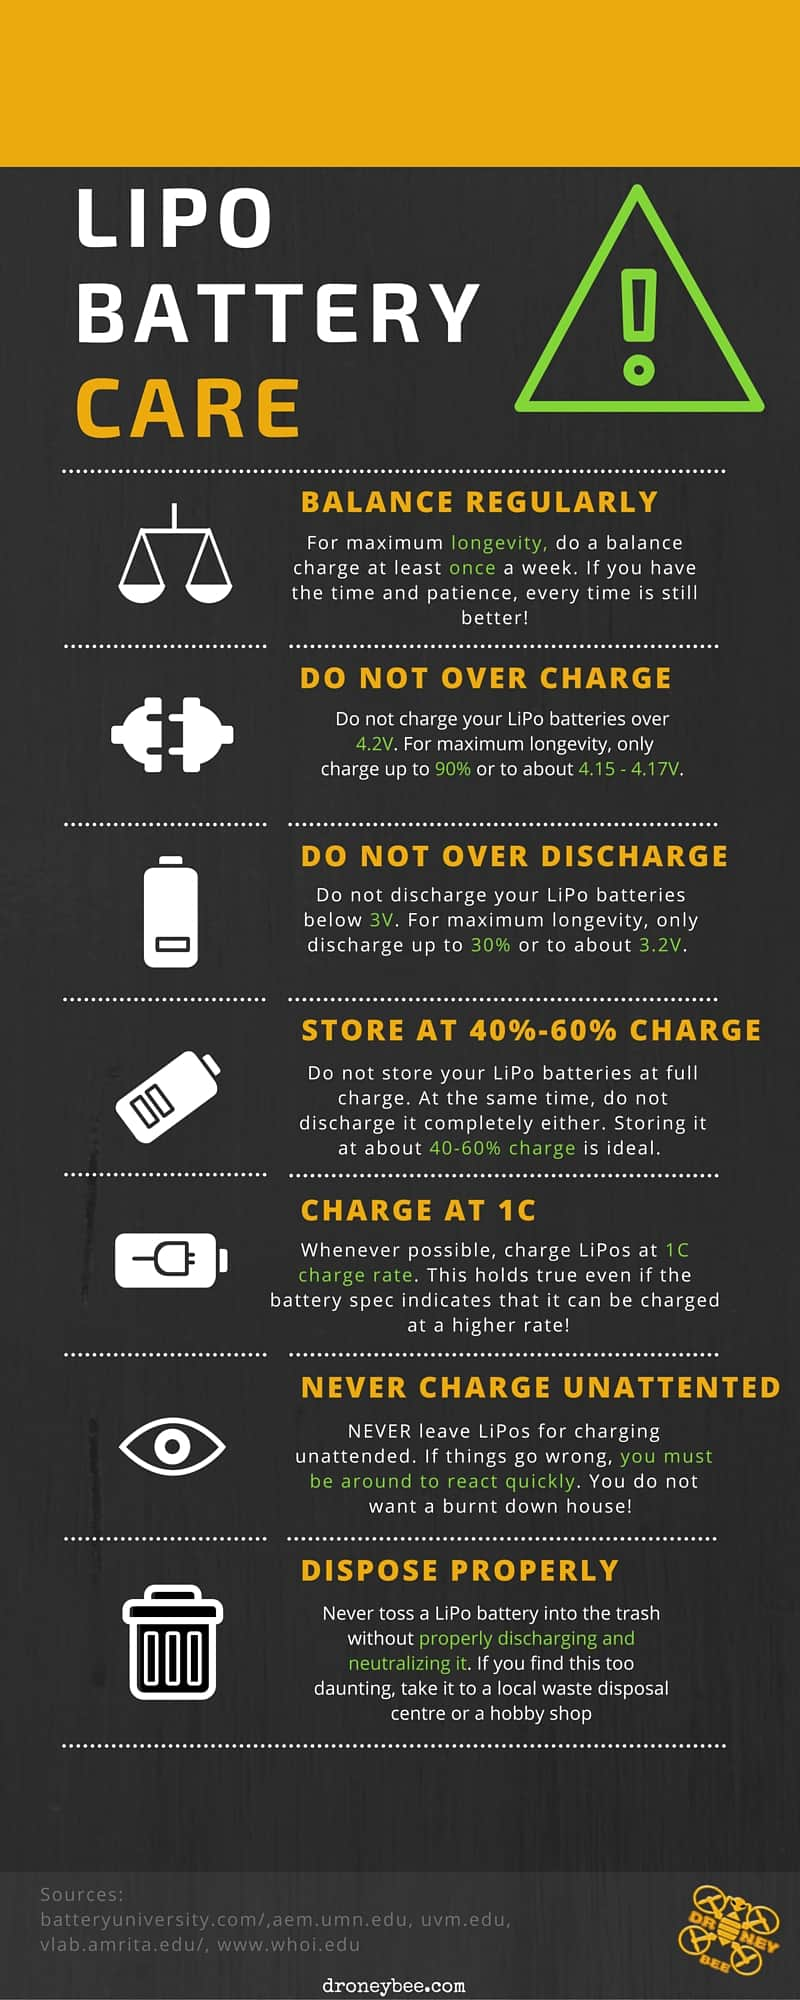 Lipo Battery Tutorial The Concise Beginner Guide Droney Bee Symbol Circuit Batteries Care Infographic